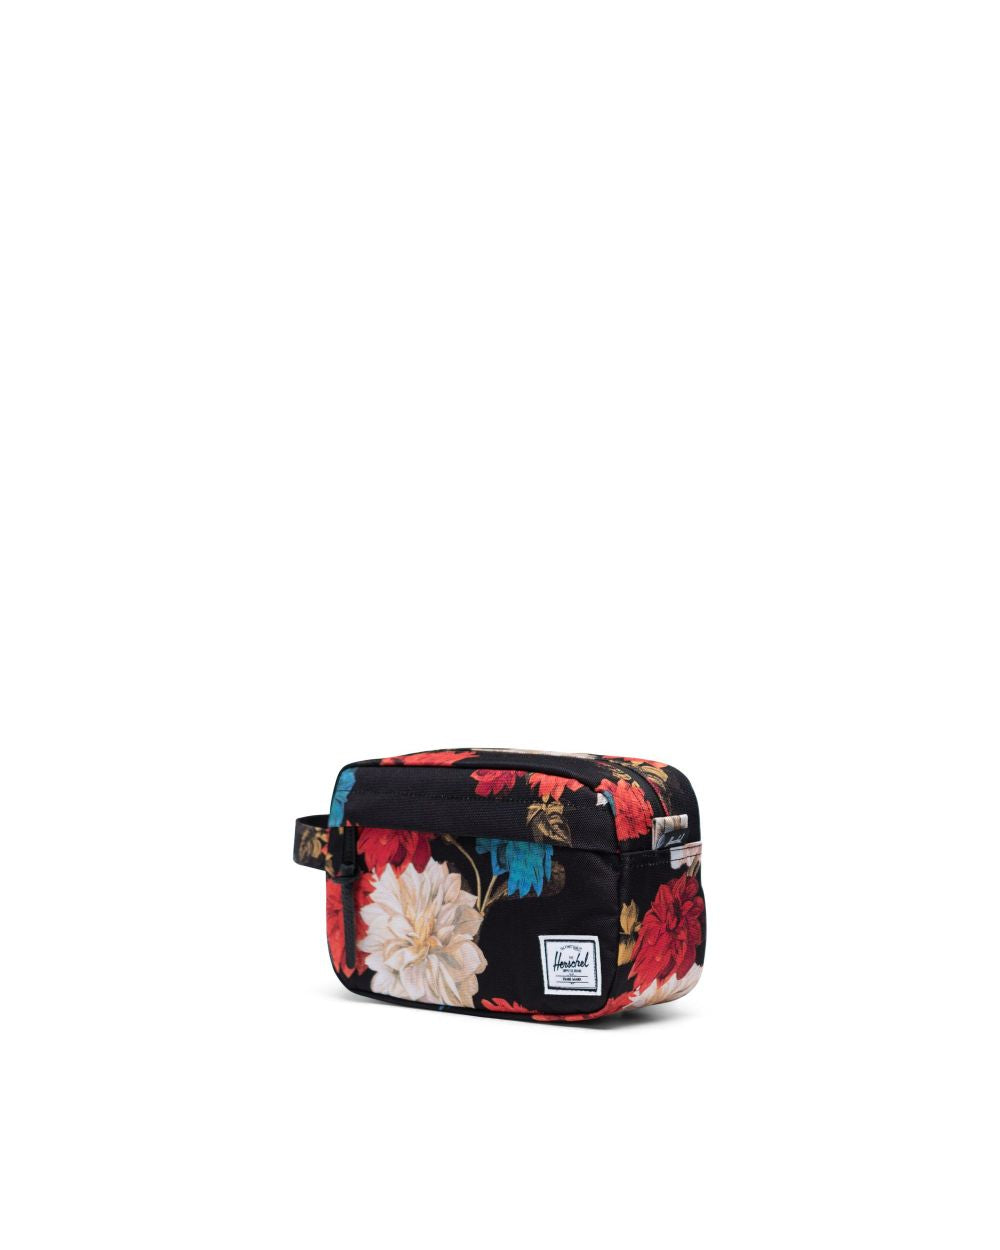 Herschel Supply Co -  Chapter Travel Kit Carry-On, Vintage Floral Black